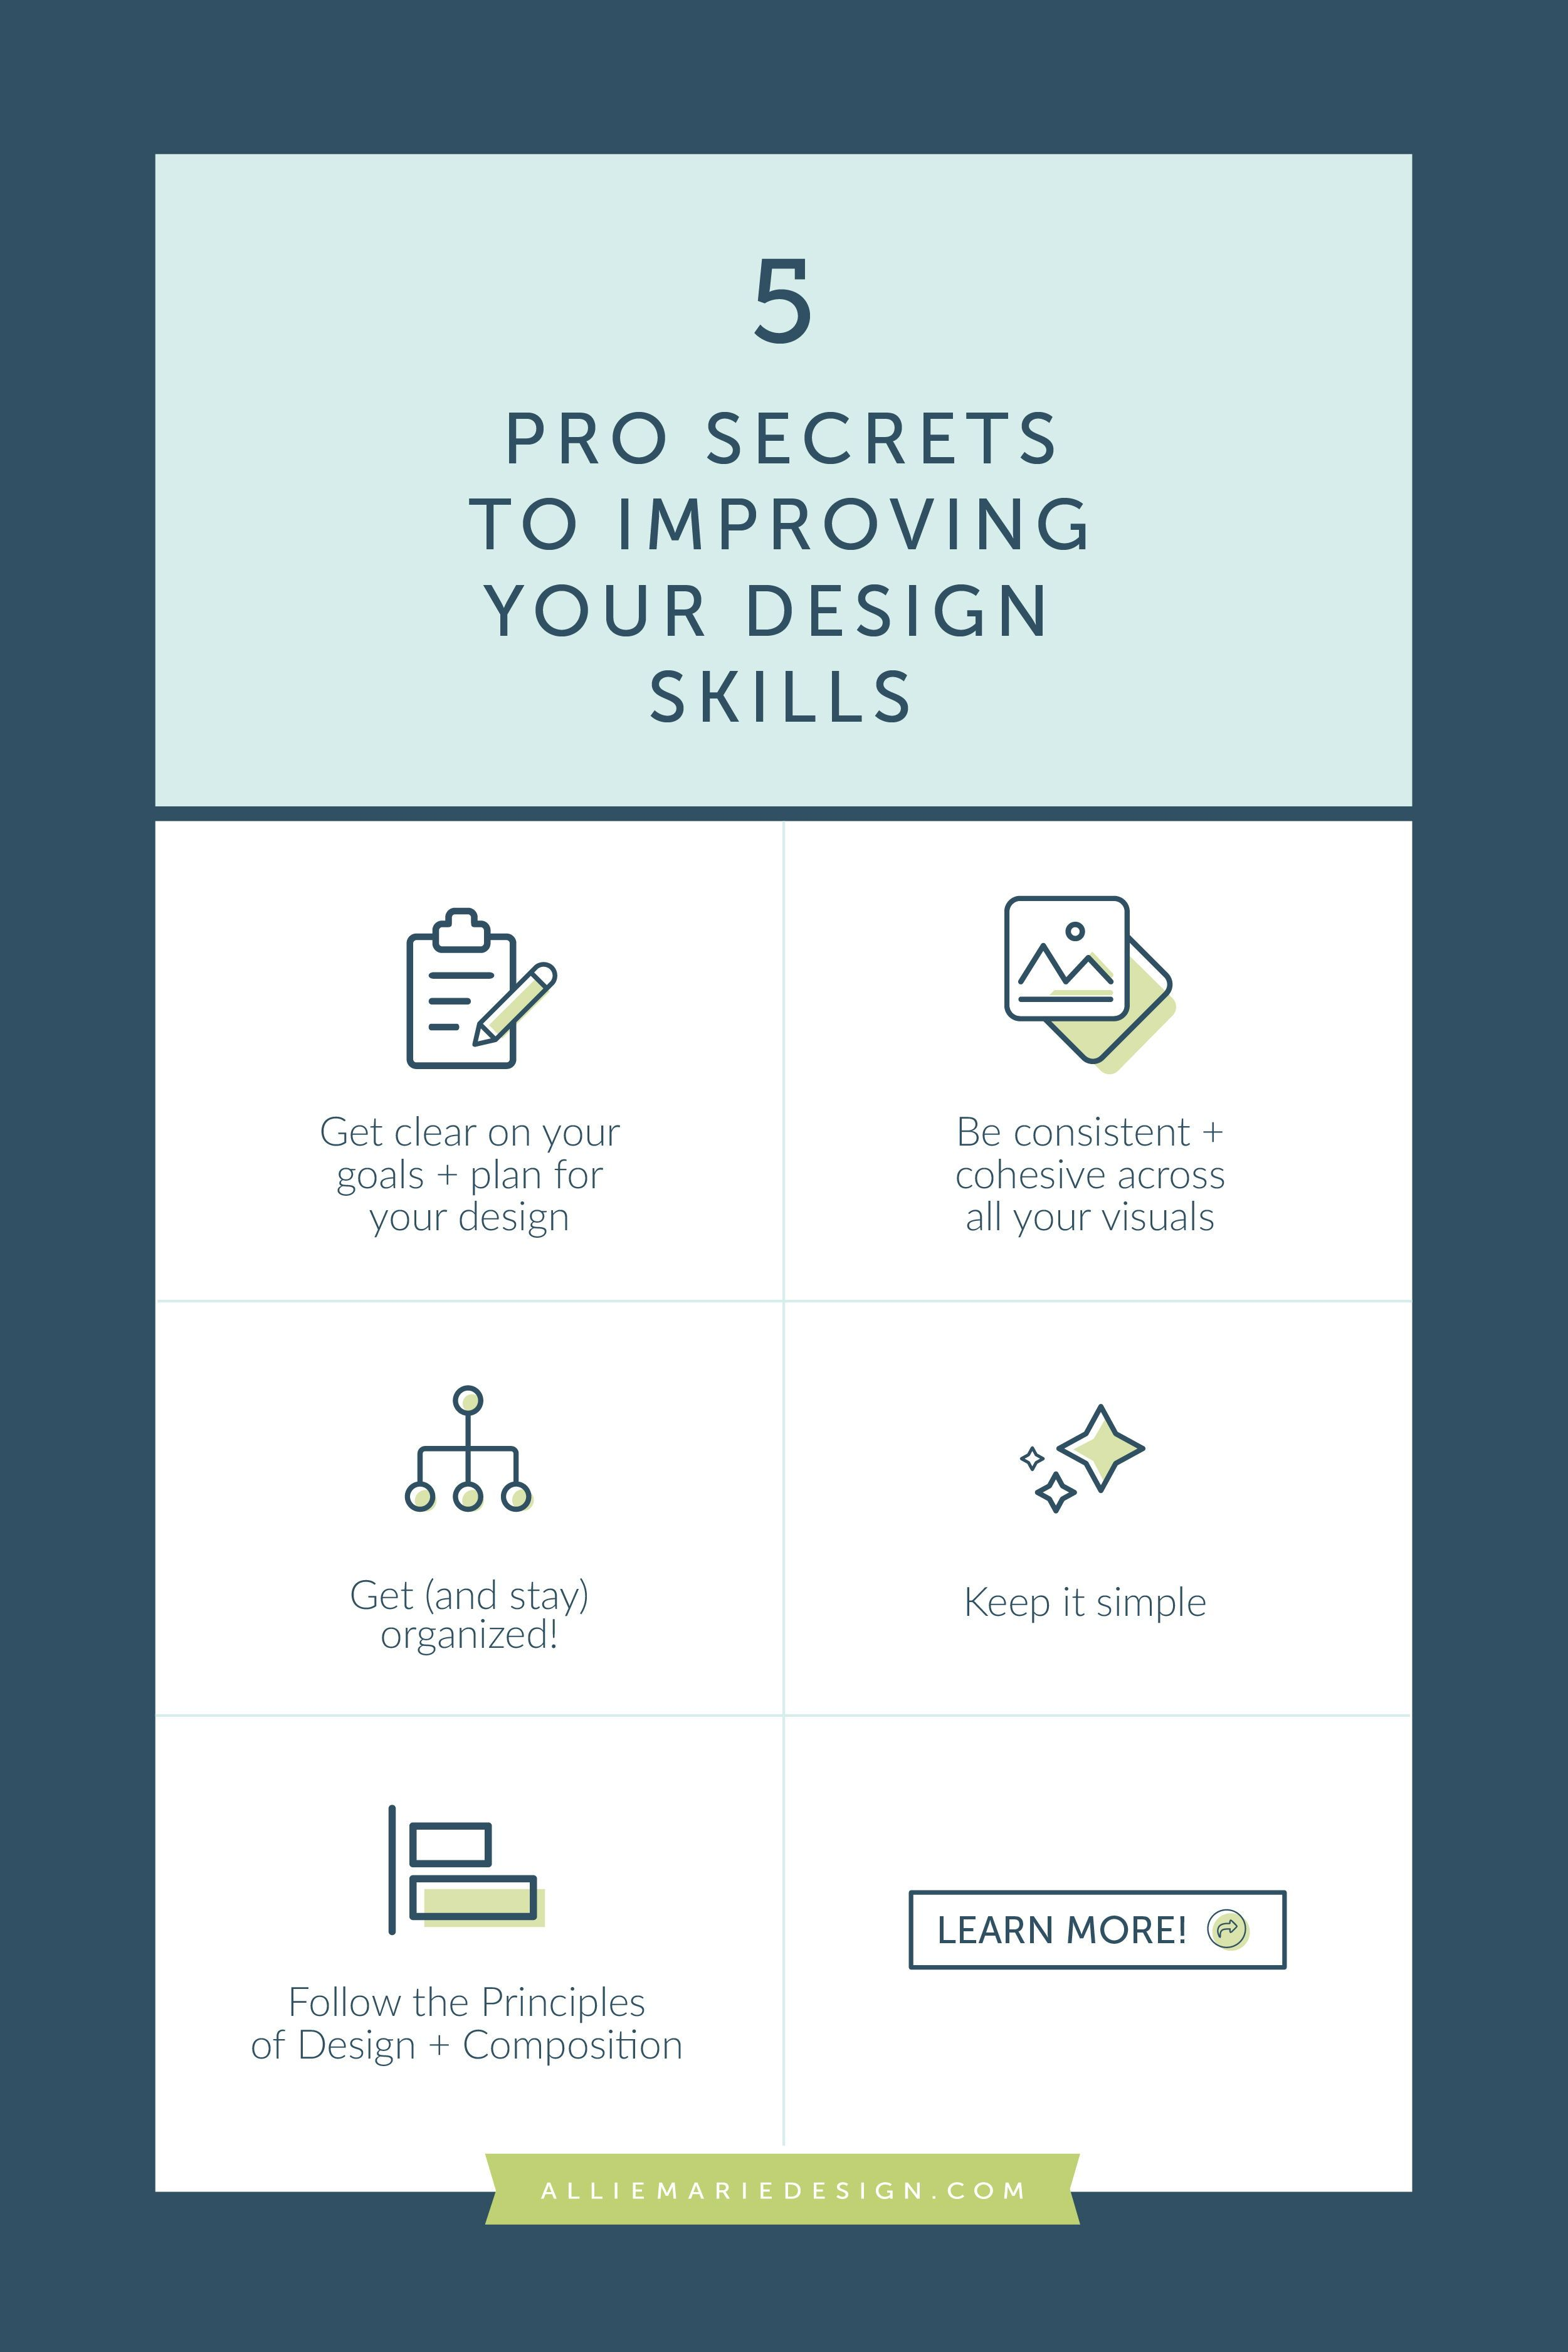 5 Pro Secrets To Improving Your Design Skills Creating Better Marketing Graphics For Your Business Alliemarie Design Design Skills Marketing Graphics Graphic Design Tips